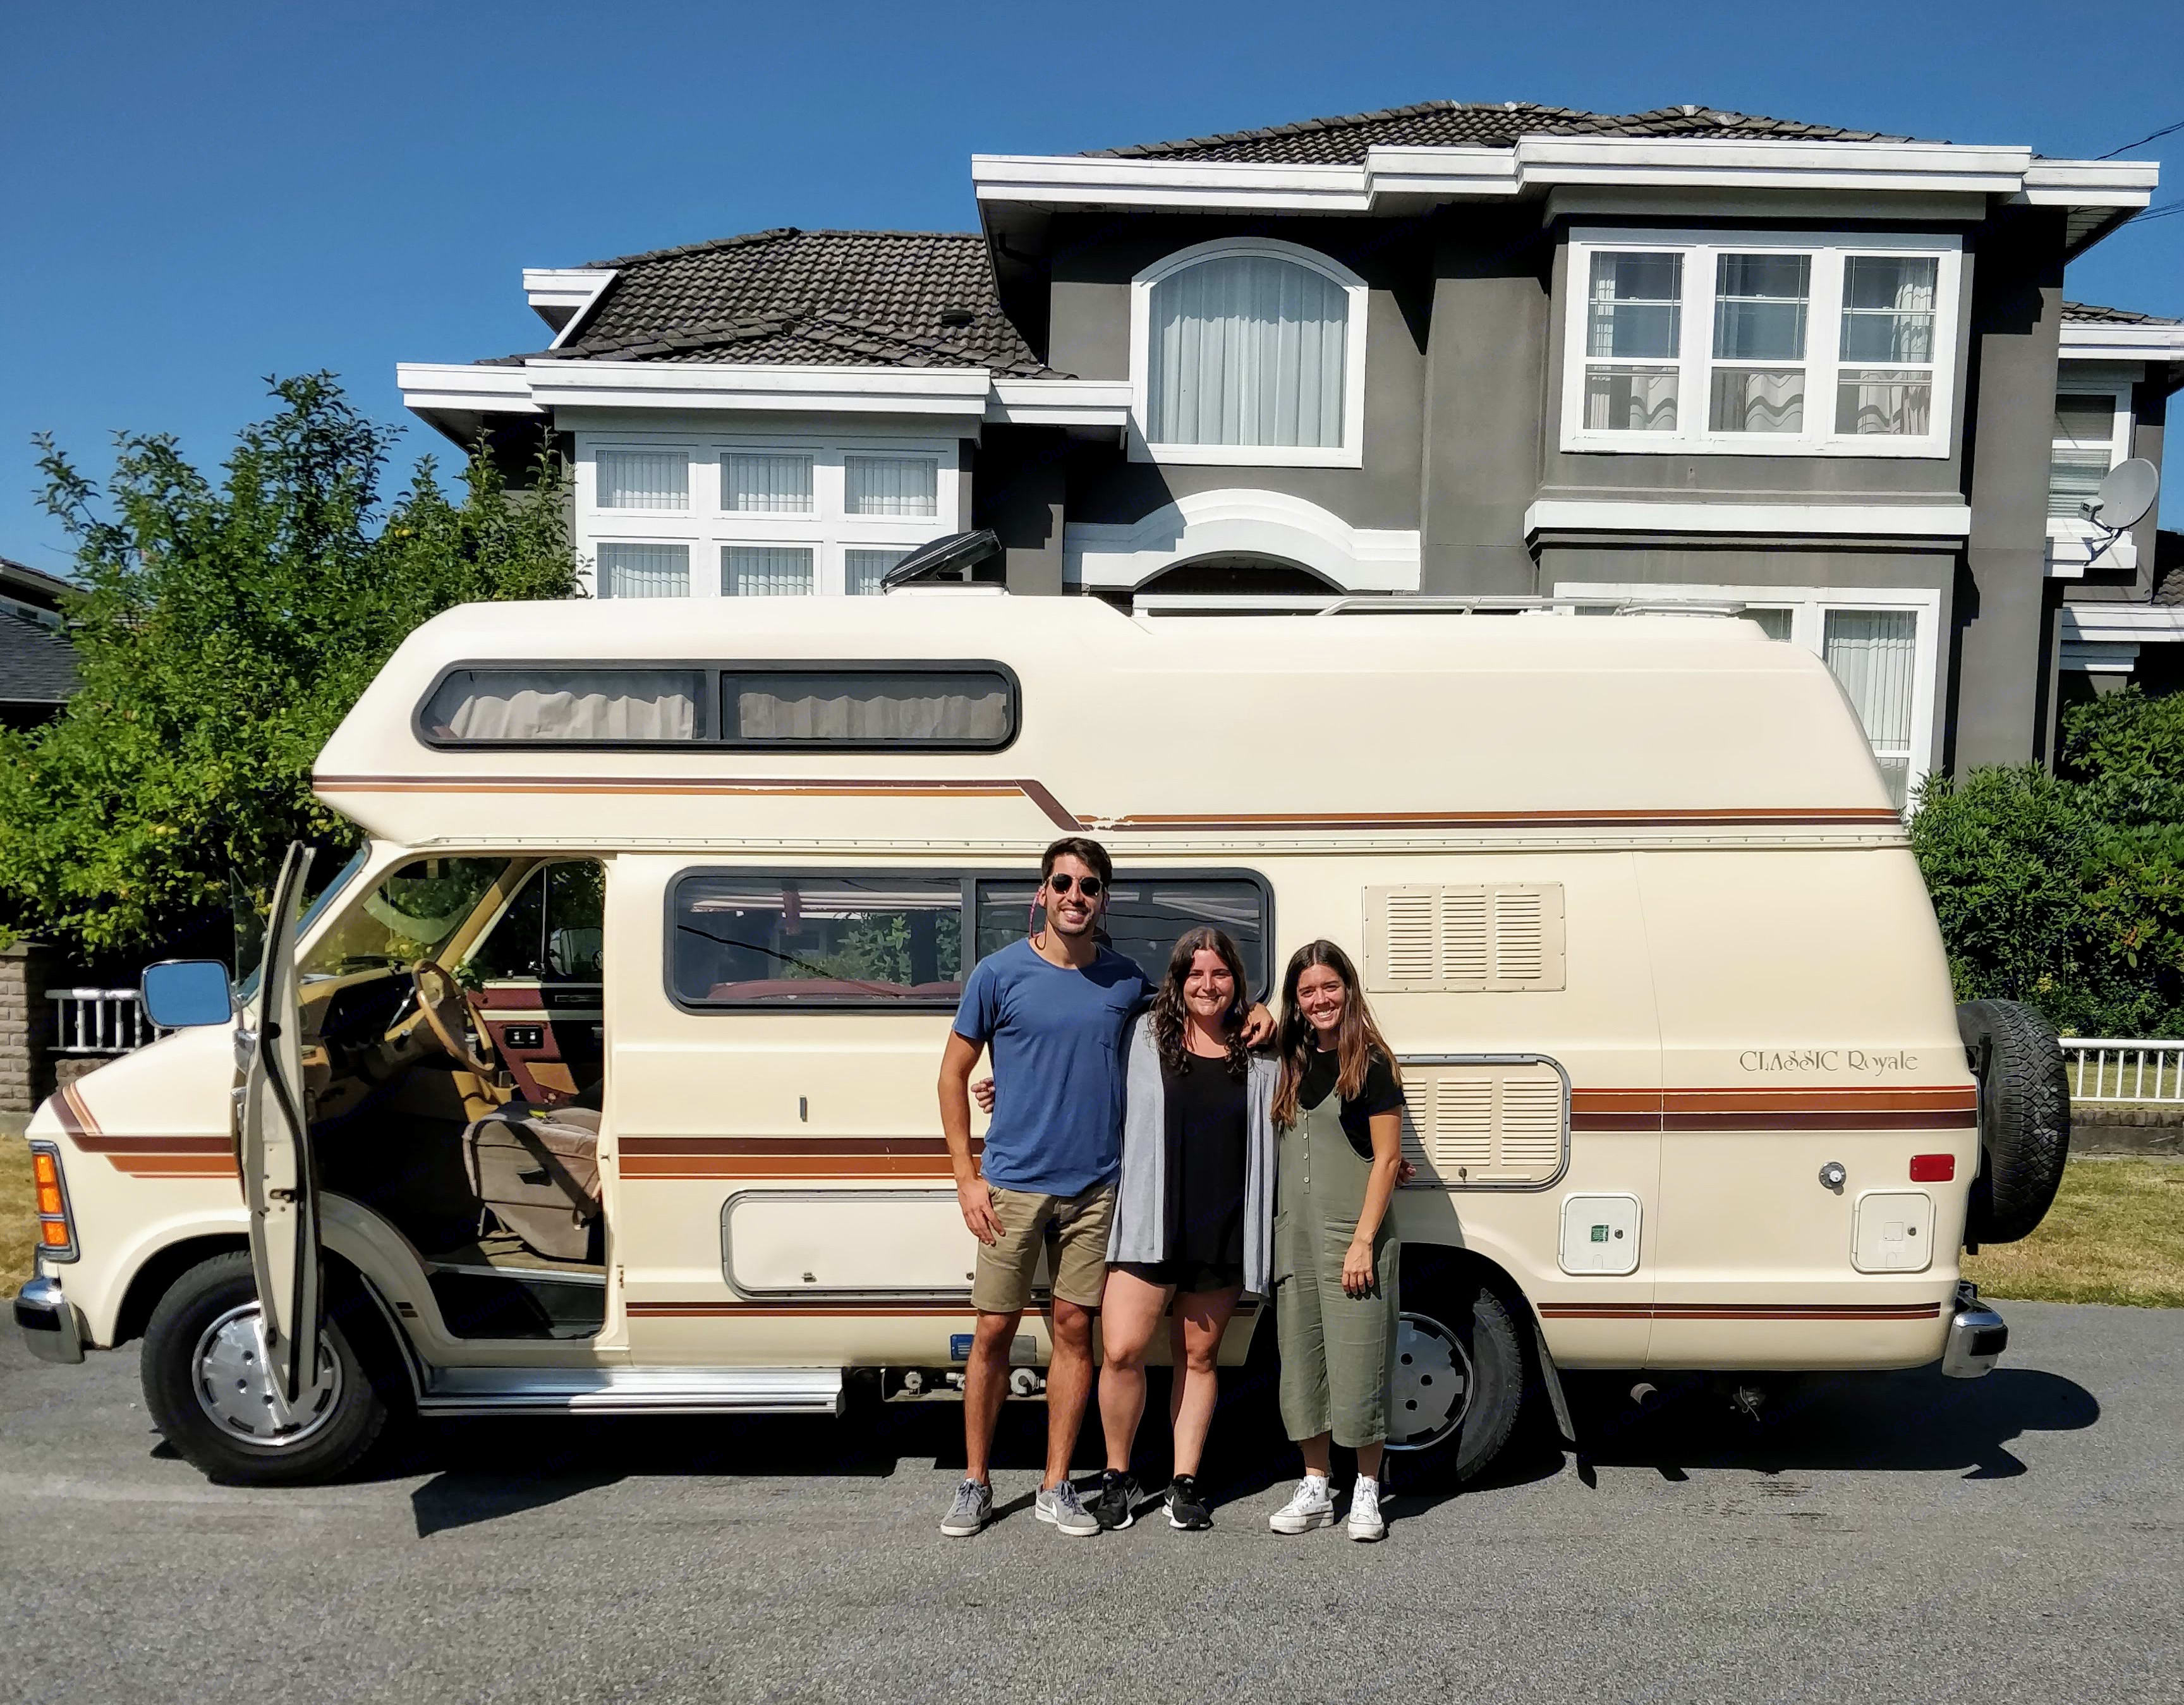 These three came all the way from Spain to explore BC in the Vantasy!. Great West Vans Classic Royale 1988